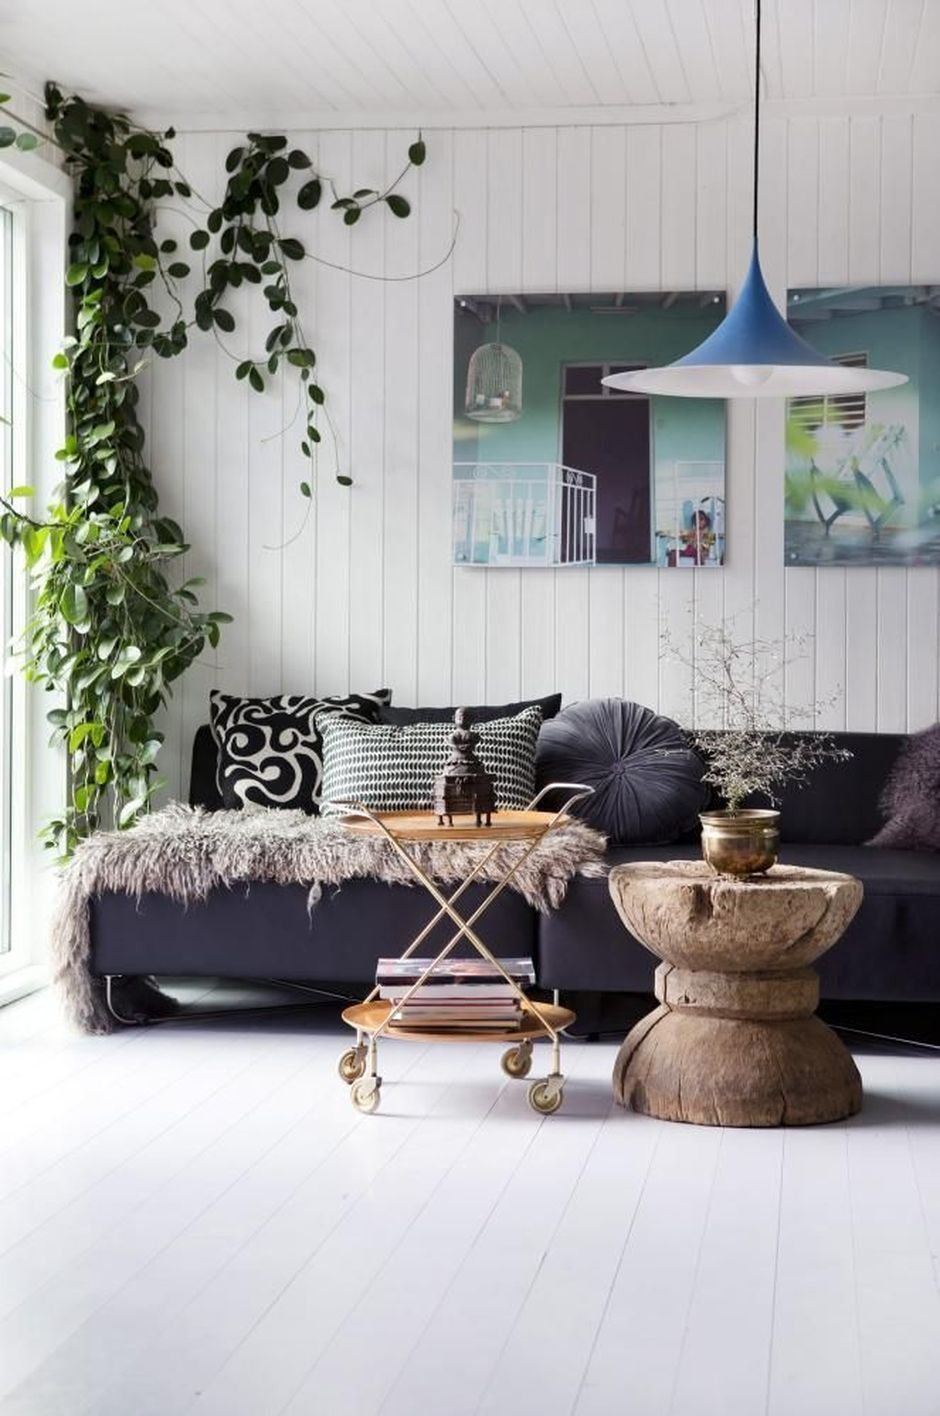 60 Marvelous Indoor Vines And Climbing Plants Decorations Living